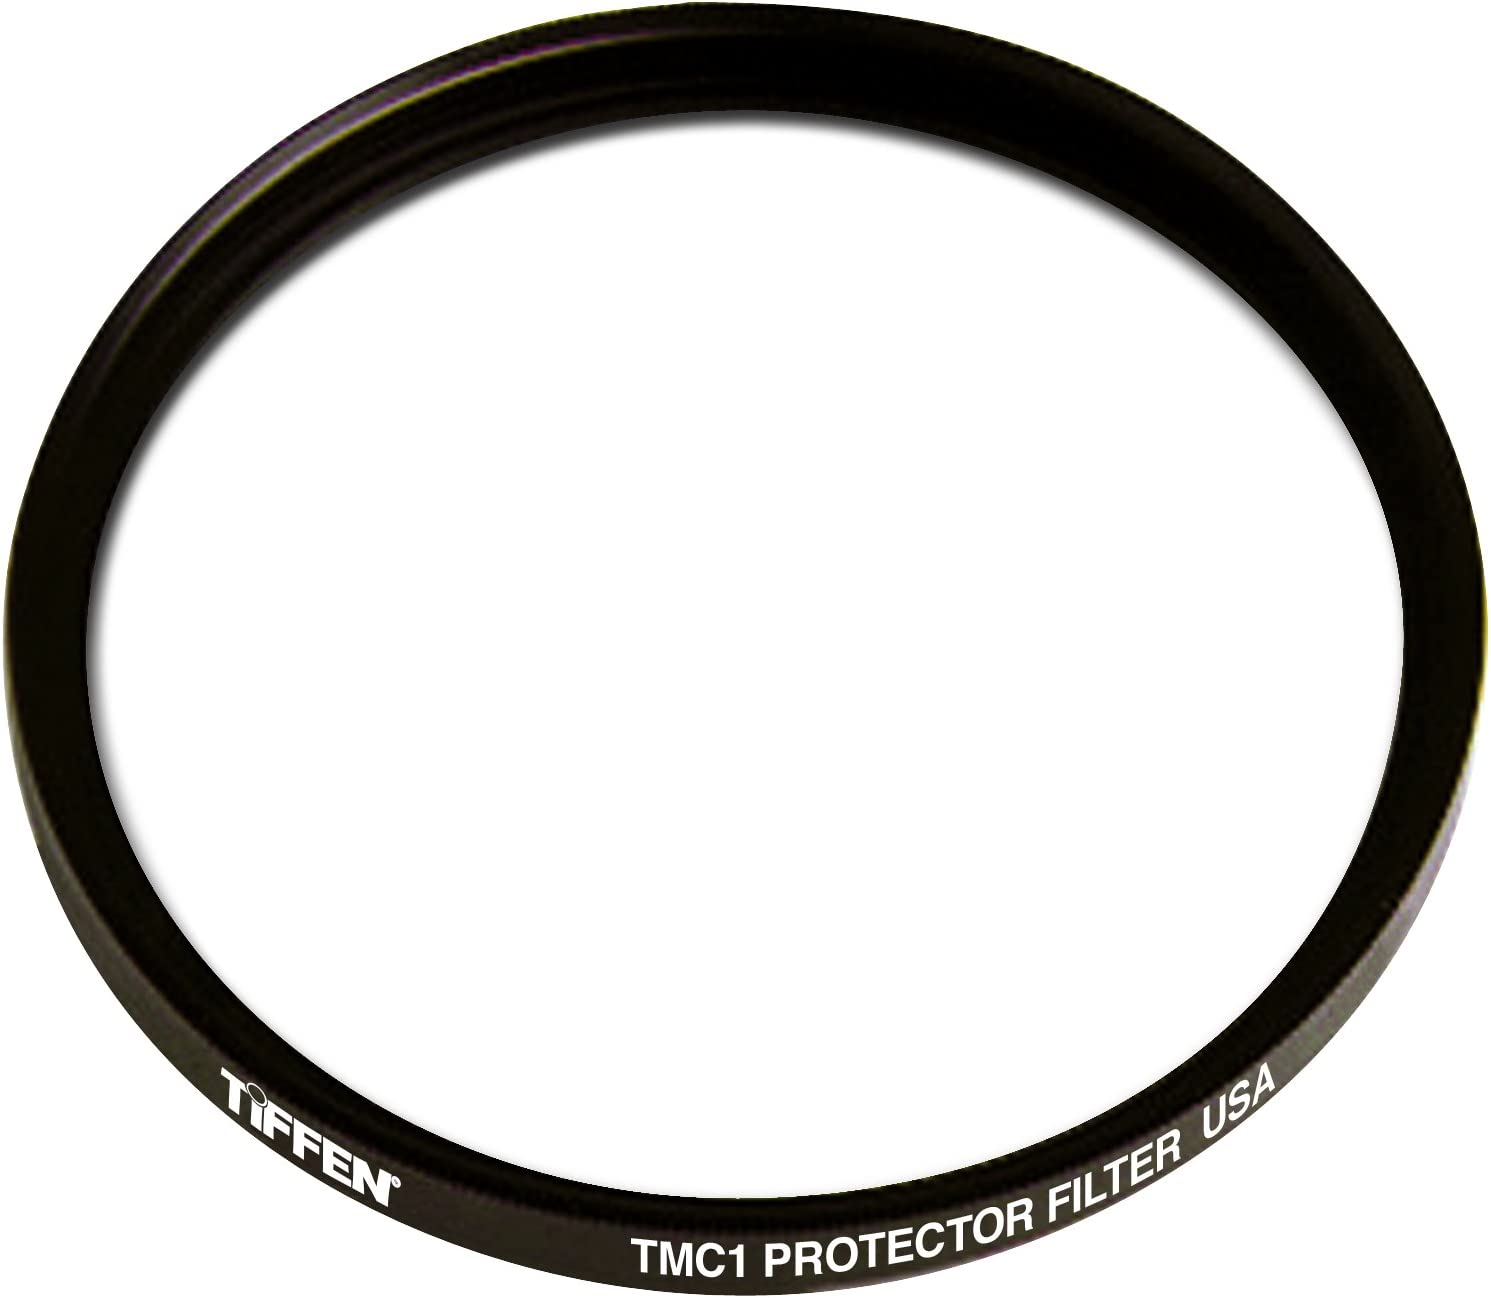 Tiffen 67 mm Multi-Coated Protection UVP Filter for DSLR and Compact System Camera Lenses